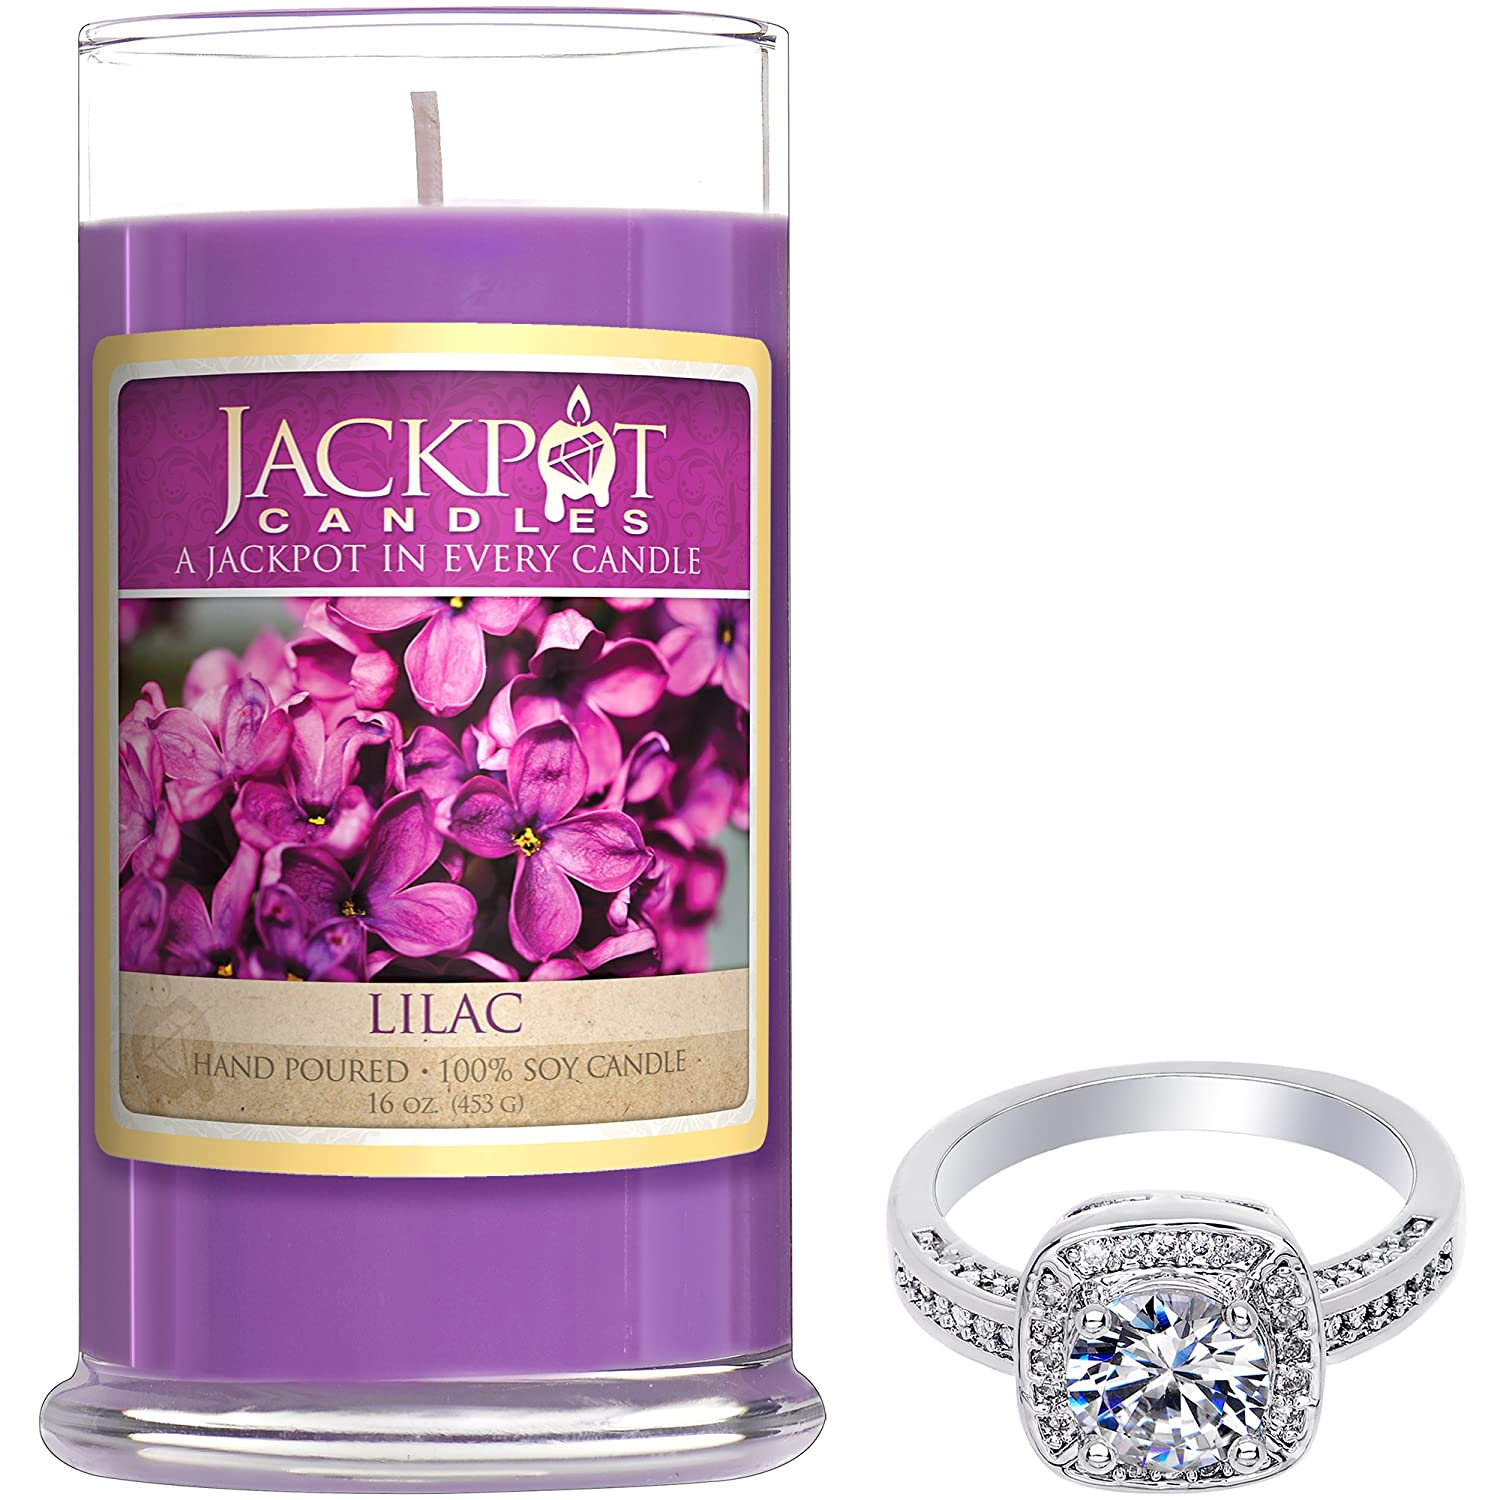 Warm Apple Pie Candle with Ring Inside (Surprise Jewelry Valued at $15 to $5, 000) Ring Size 6 Jackpot Candles CAN-300-RNG-6